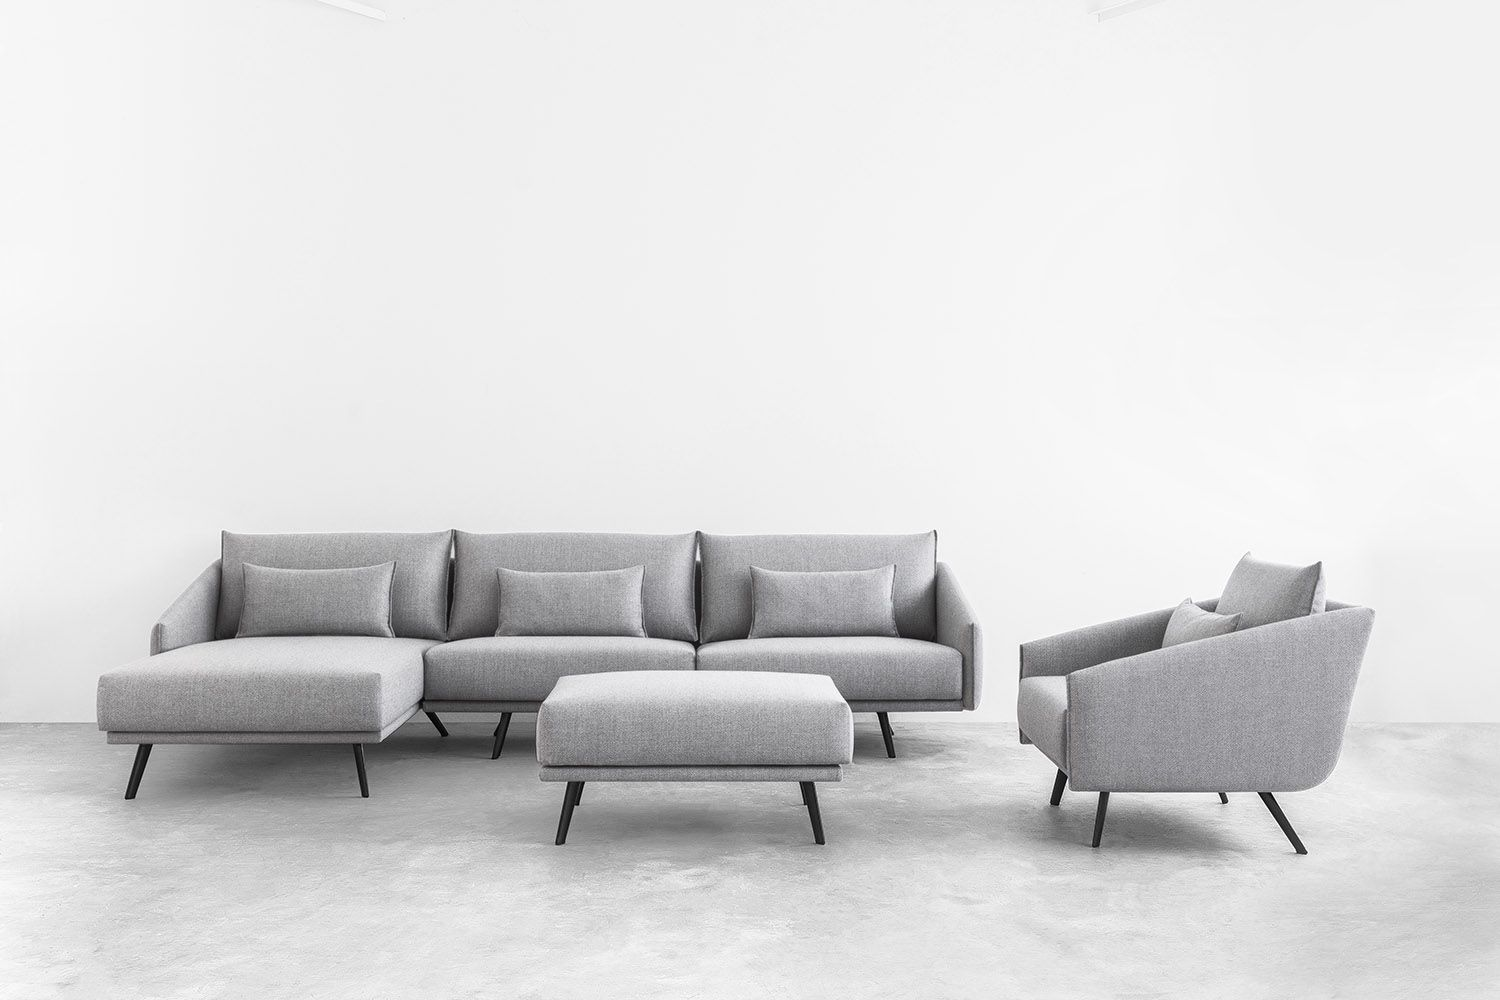 Here It Is The Costura Sofa Catalogue In Pdf Format Use To Learn About